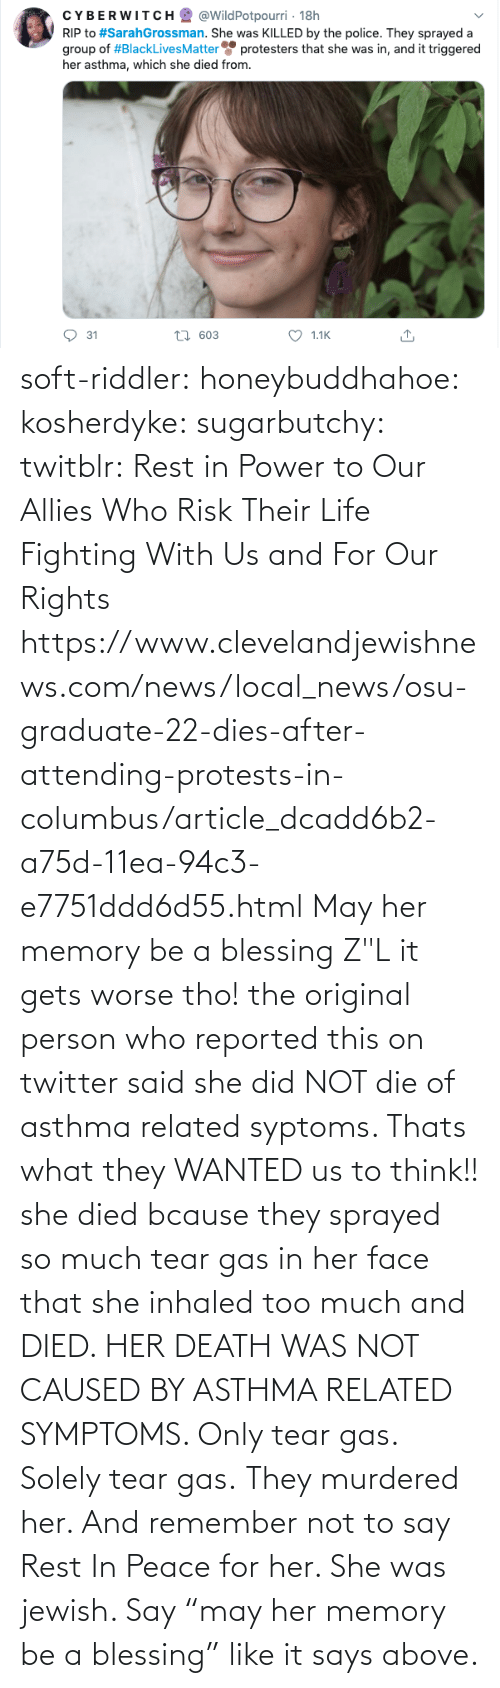 "Our: soft-riddler:  honeybuddhahoe:  kosherdyke:  sugarbutchy:  twitblr: Rest in Power to Our Allies Who Risk Their Life Fighting With Us and For Our Rights https://www.clevelandjewishnews.com/news/local_news/osu-graduate-22-dies-after-attending-protests-in-columbus/article_dcadd6b2-a75d-11ea-94c3-e7751ddd6d55.html    May her memory be a blessing Z""L  it gets worse tho! the original person who reported this on twitter said she did NOT die of asthma related syptoms. Thats what they WANTED us to think!! she died bcause they sprayed so much tear gas in her face that she inhaled too much and DIED. HER DEATH WAS NOT CAUSED BY ASTHMA RELATED SYMPTOMS. Only tear gas. Solely tear gas. They murdered her.     And remember not to say Rest In Peace for her. She was jewish. Say ""may her memory be a blessing"" like it says above."